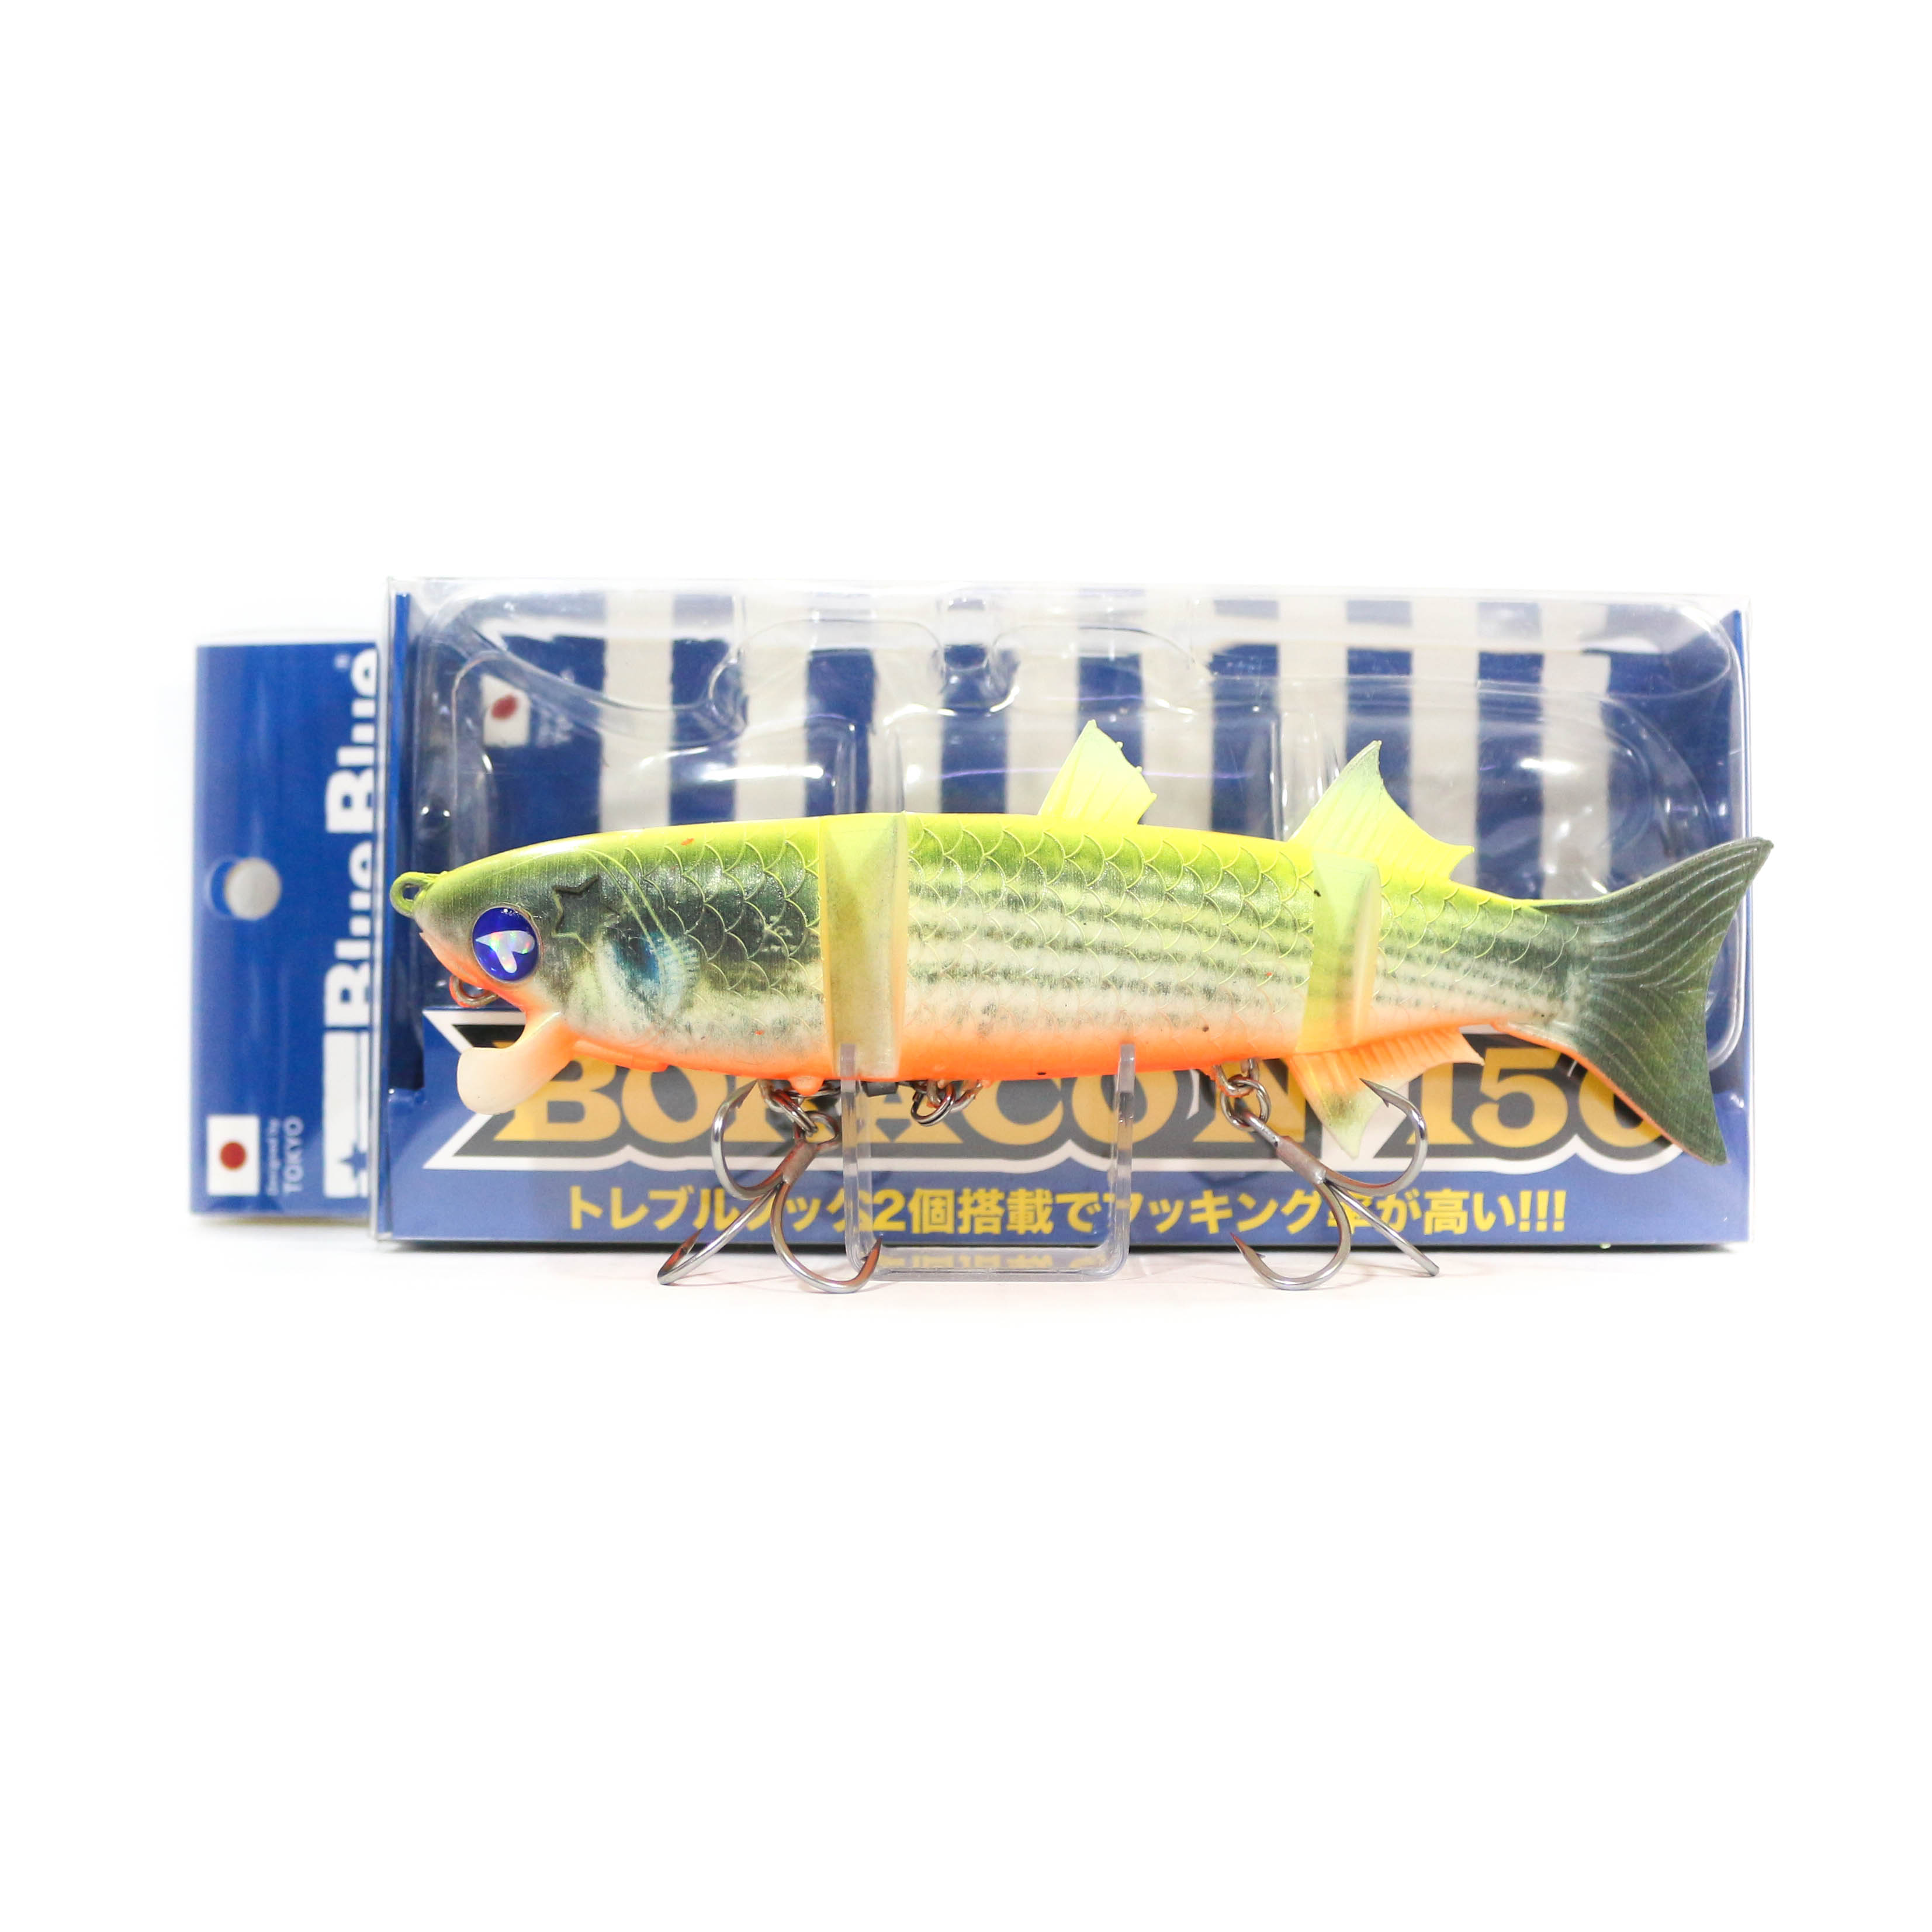 Blue Blue Boracon 150 48 grams Floating Lure 03 (1719)